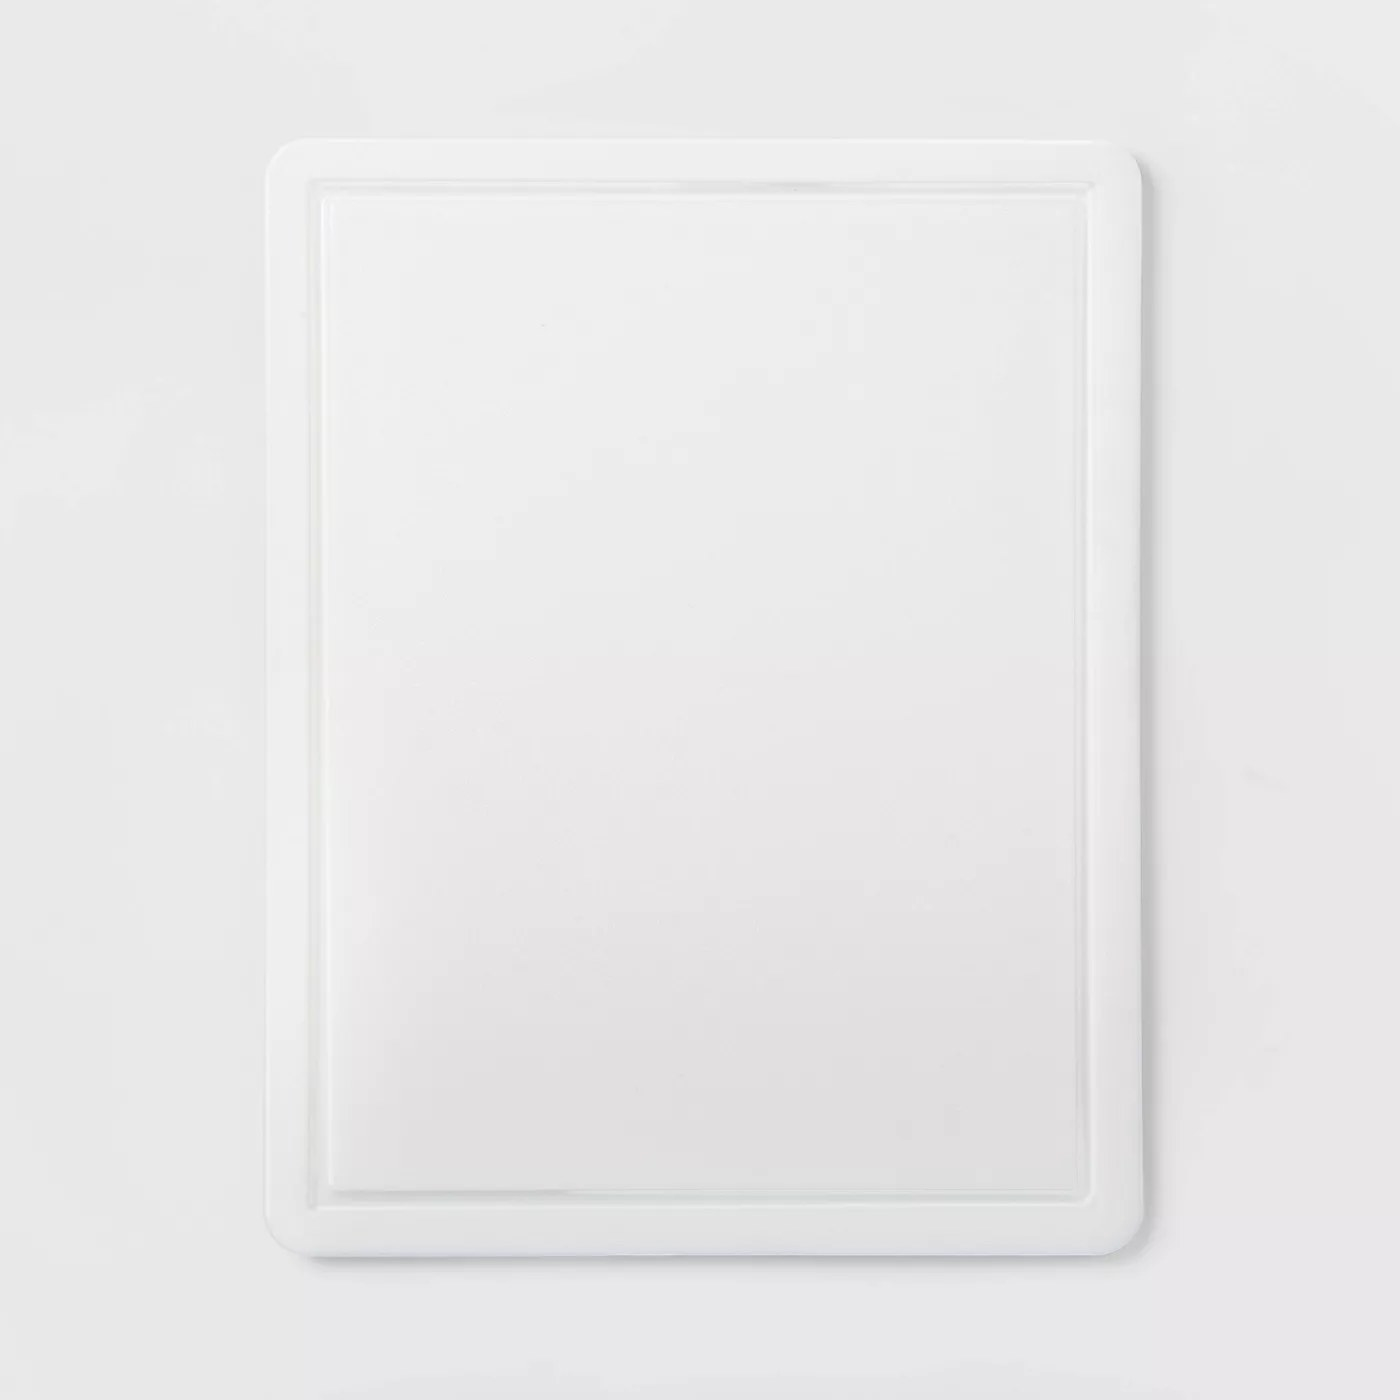 The white, grooved, nonslip cutting board